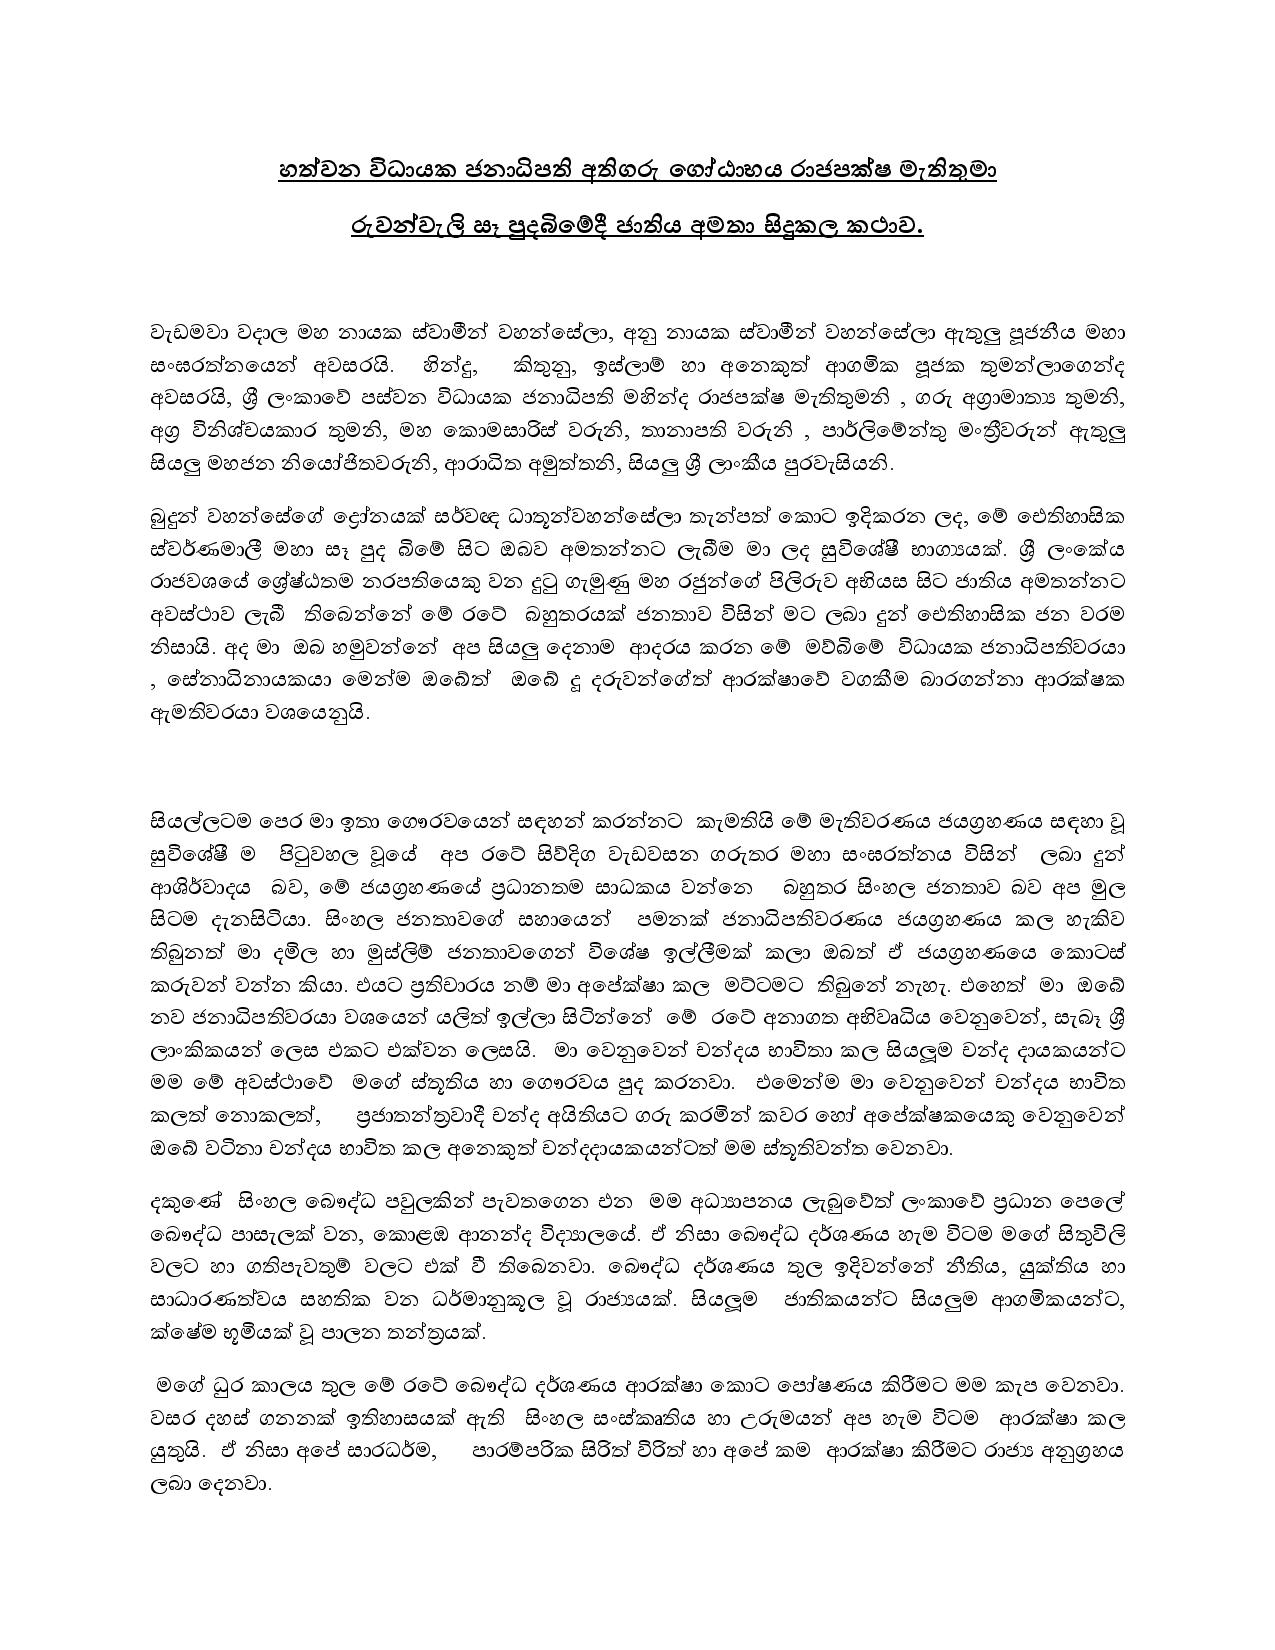 2019.11.18 Speech Made By HE the President Gotabaya Rajapaksa at Ruvanweli Se Pudabima 11 page 001